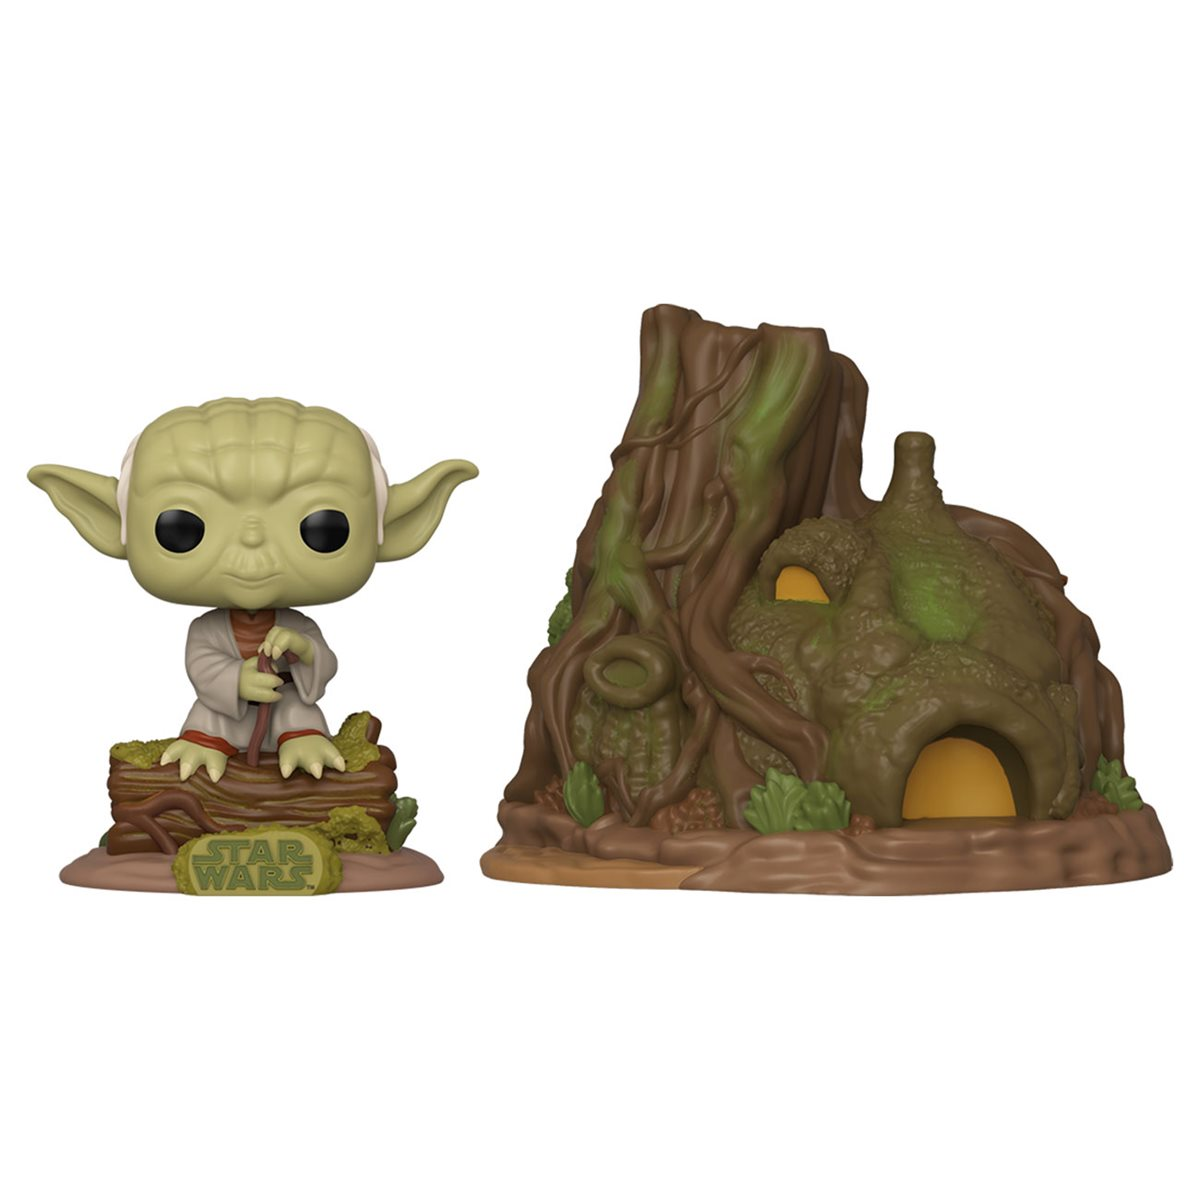 Yoda With Dagobah Hut Funko Pop Set Up for Pre-Order